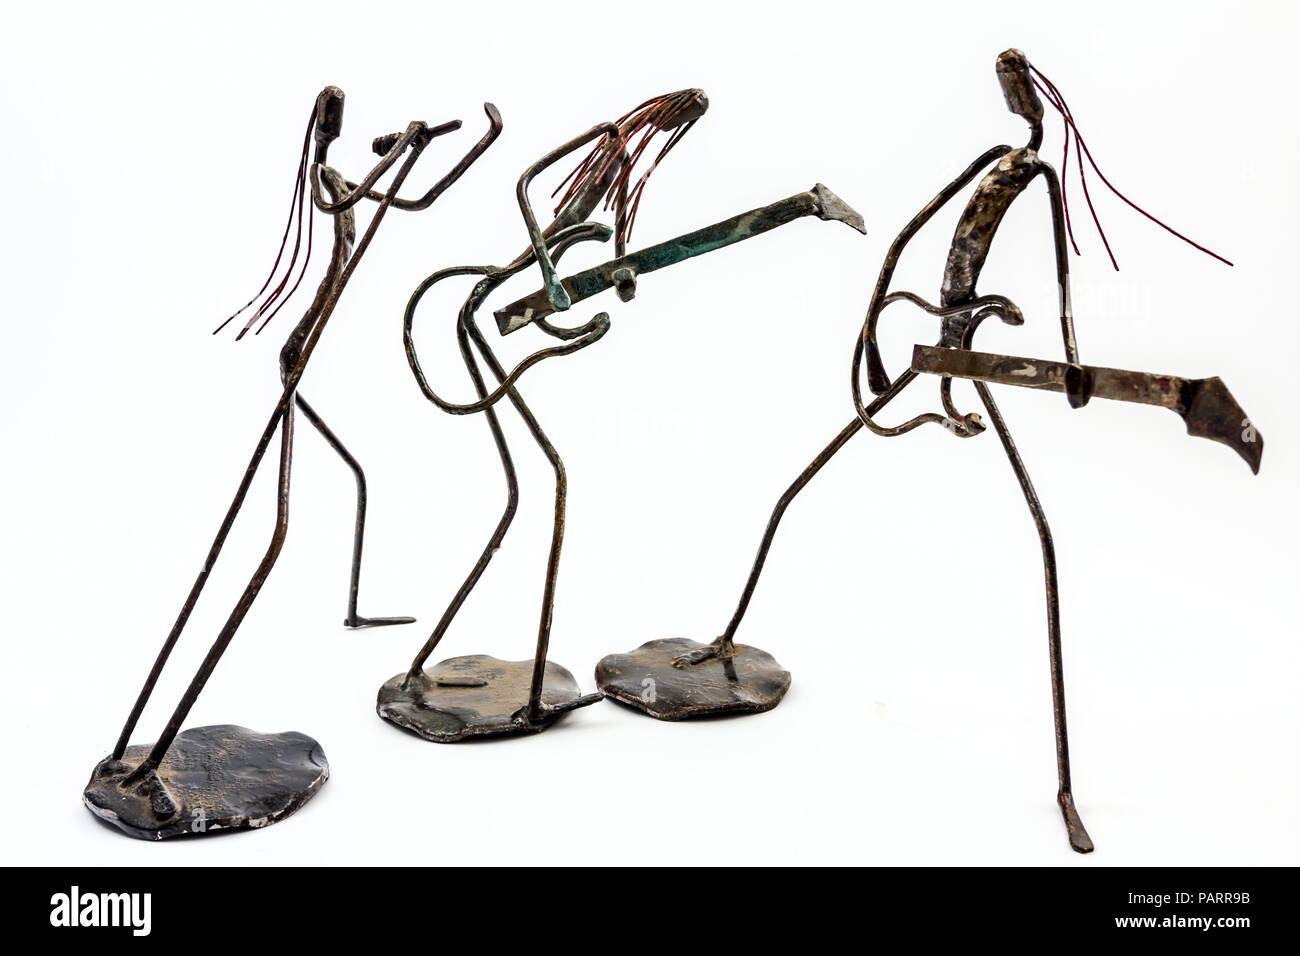 Figures of music performers made with welded black metal wire. Band made of two guitarists and singer is singing. Living lines - Stock Image